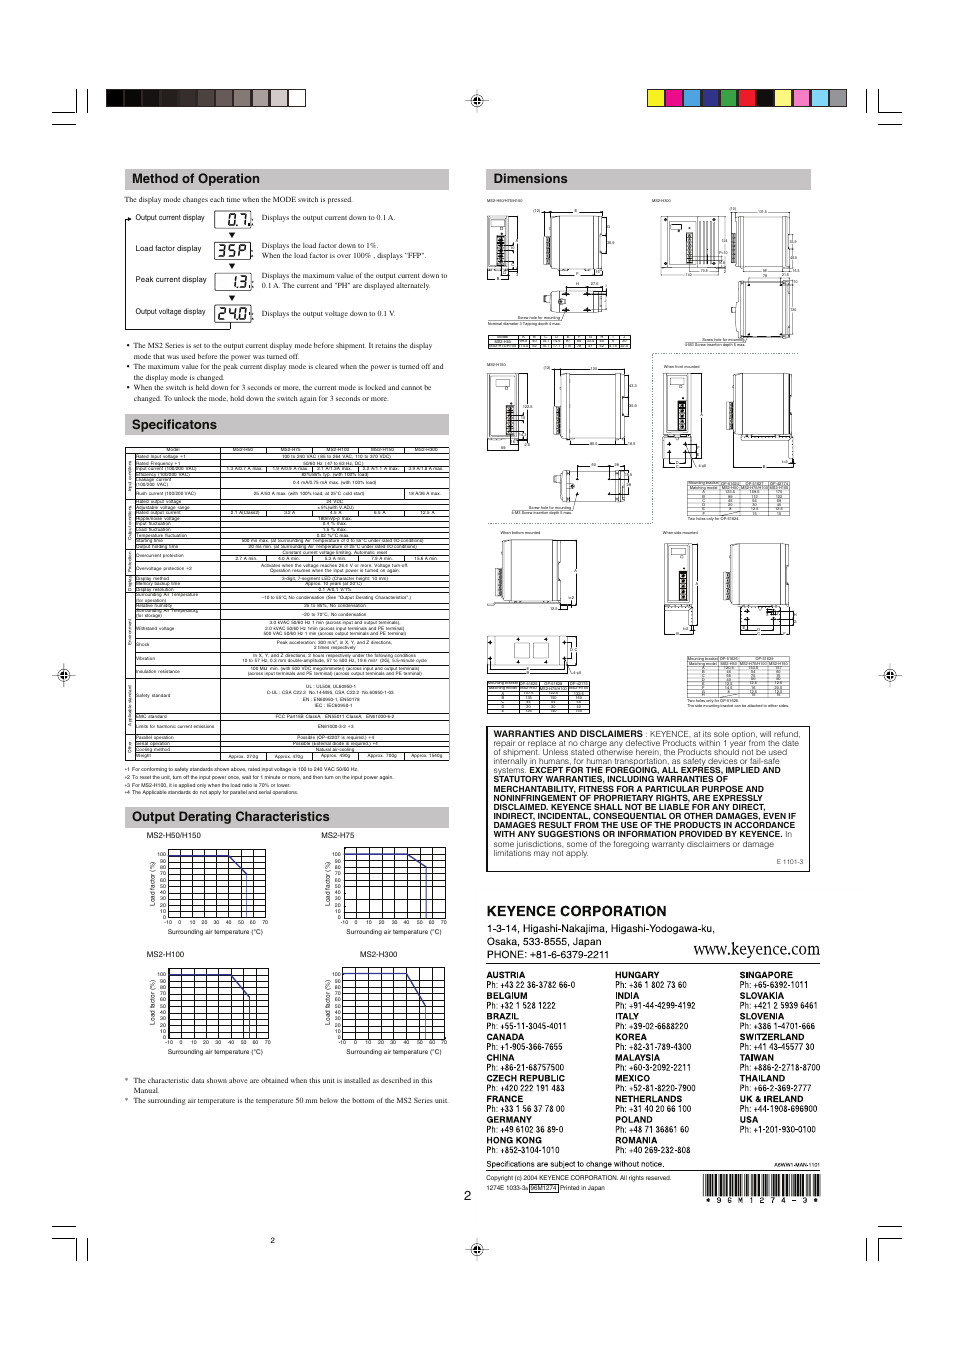 Method Of Operation Specificatons Output Derating Characteristics Keyence Wiring Diagram Ms2 Series User Manual Page 2